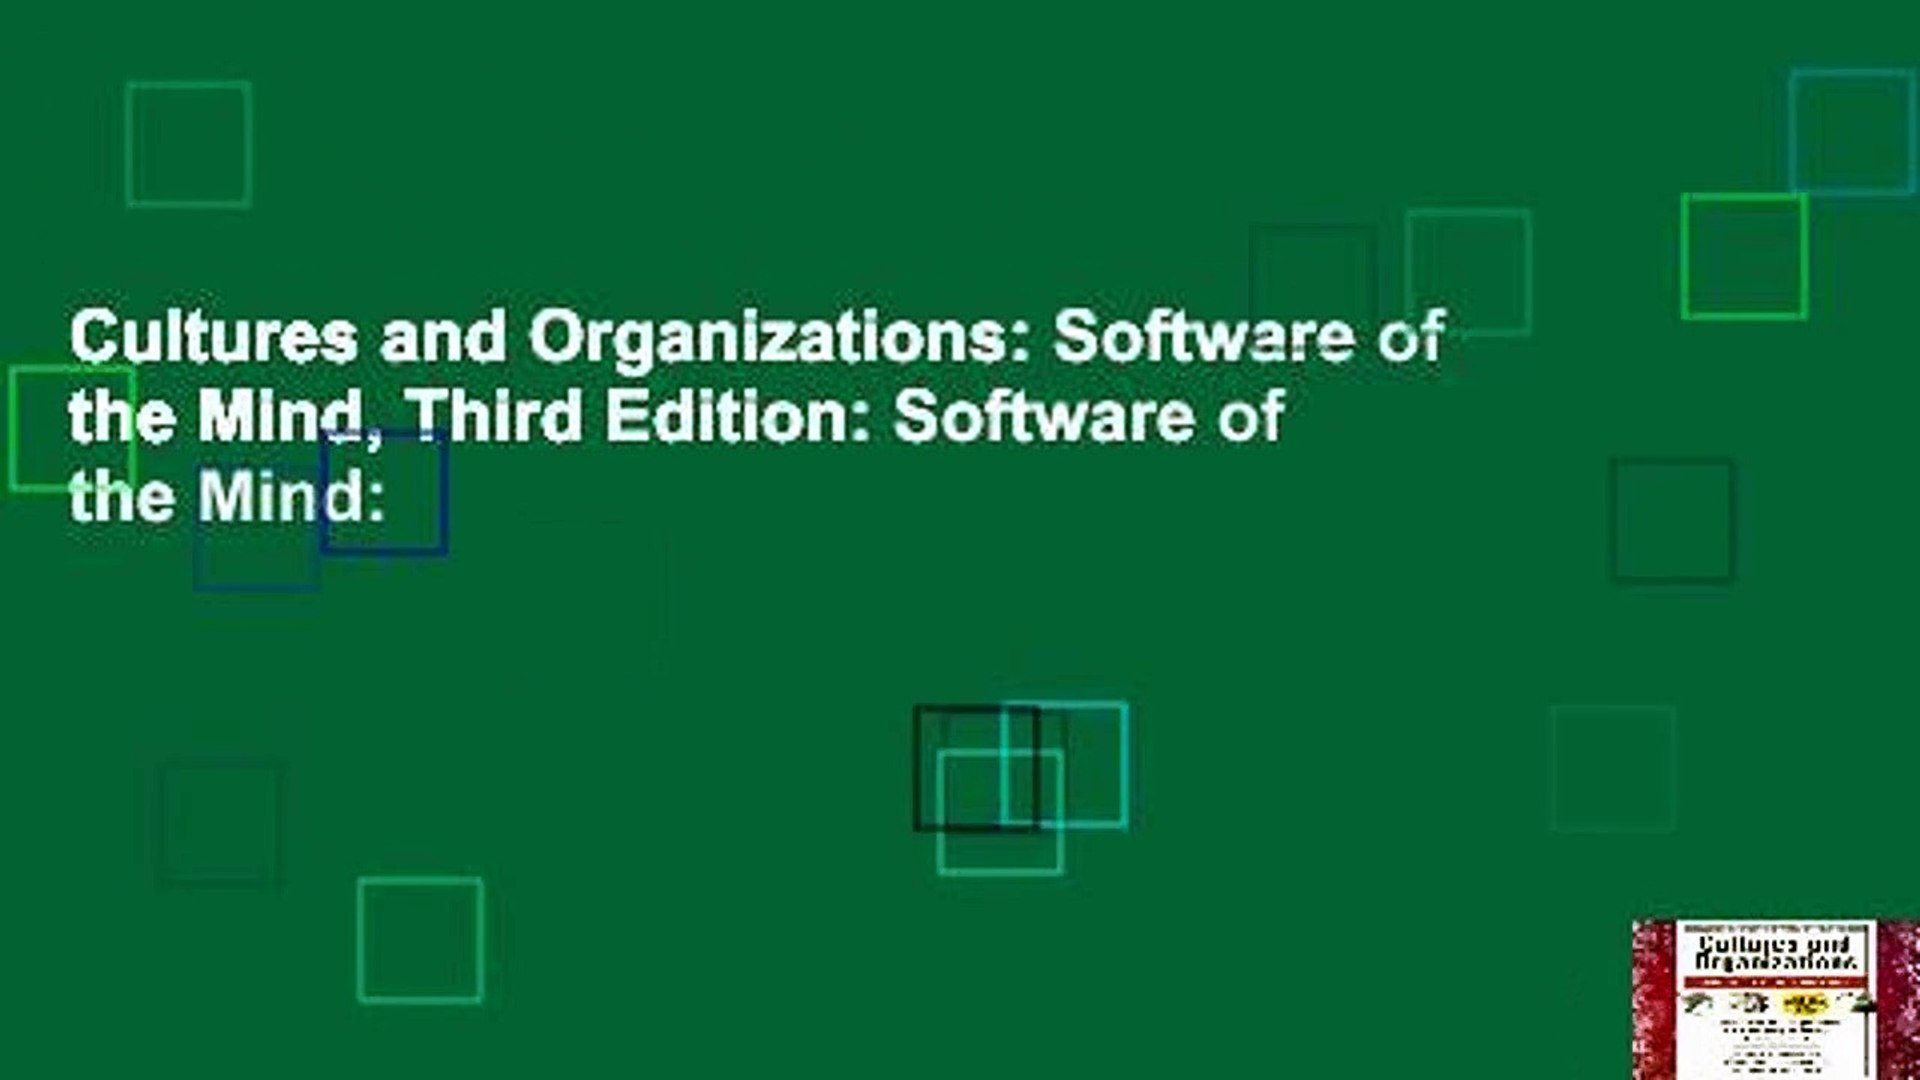 Cultures and Organizations: Software of the Mind, Third Edition: Software of the Mind: